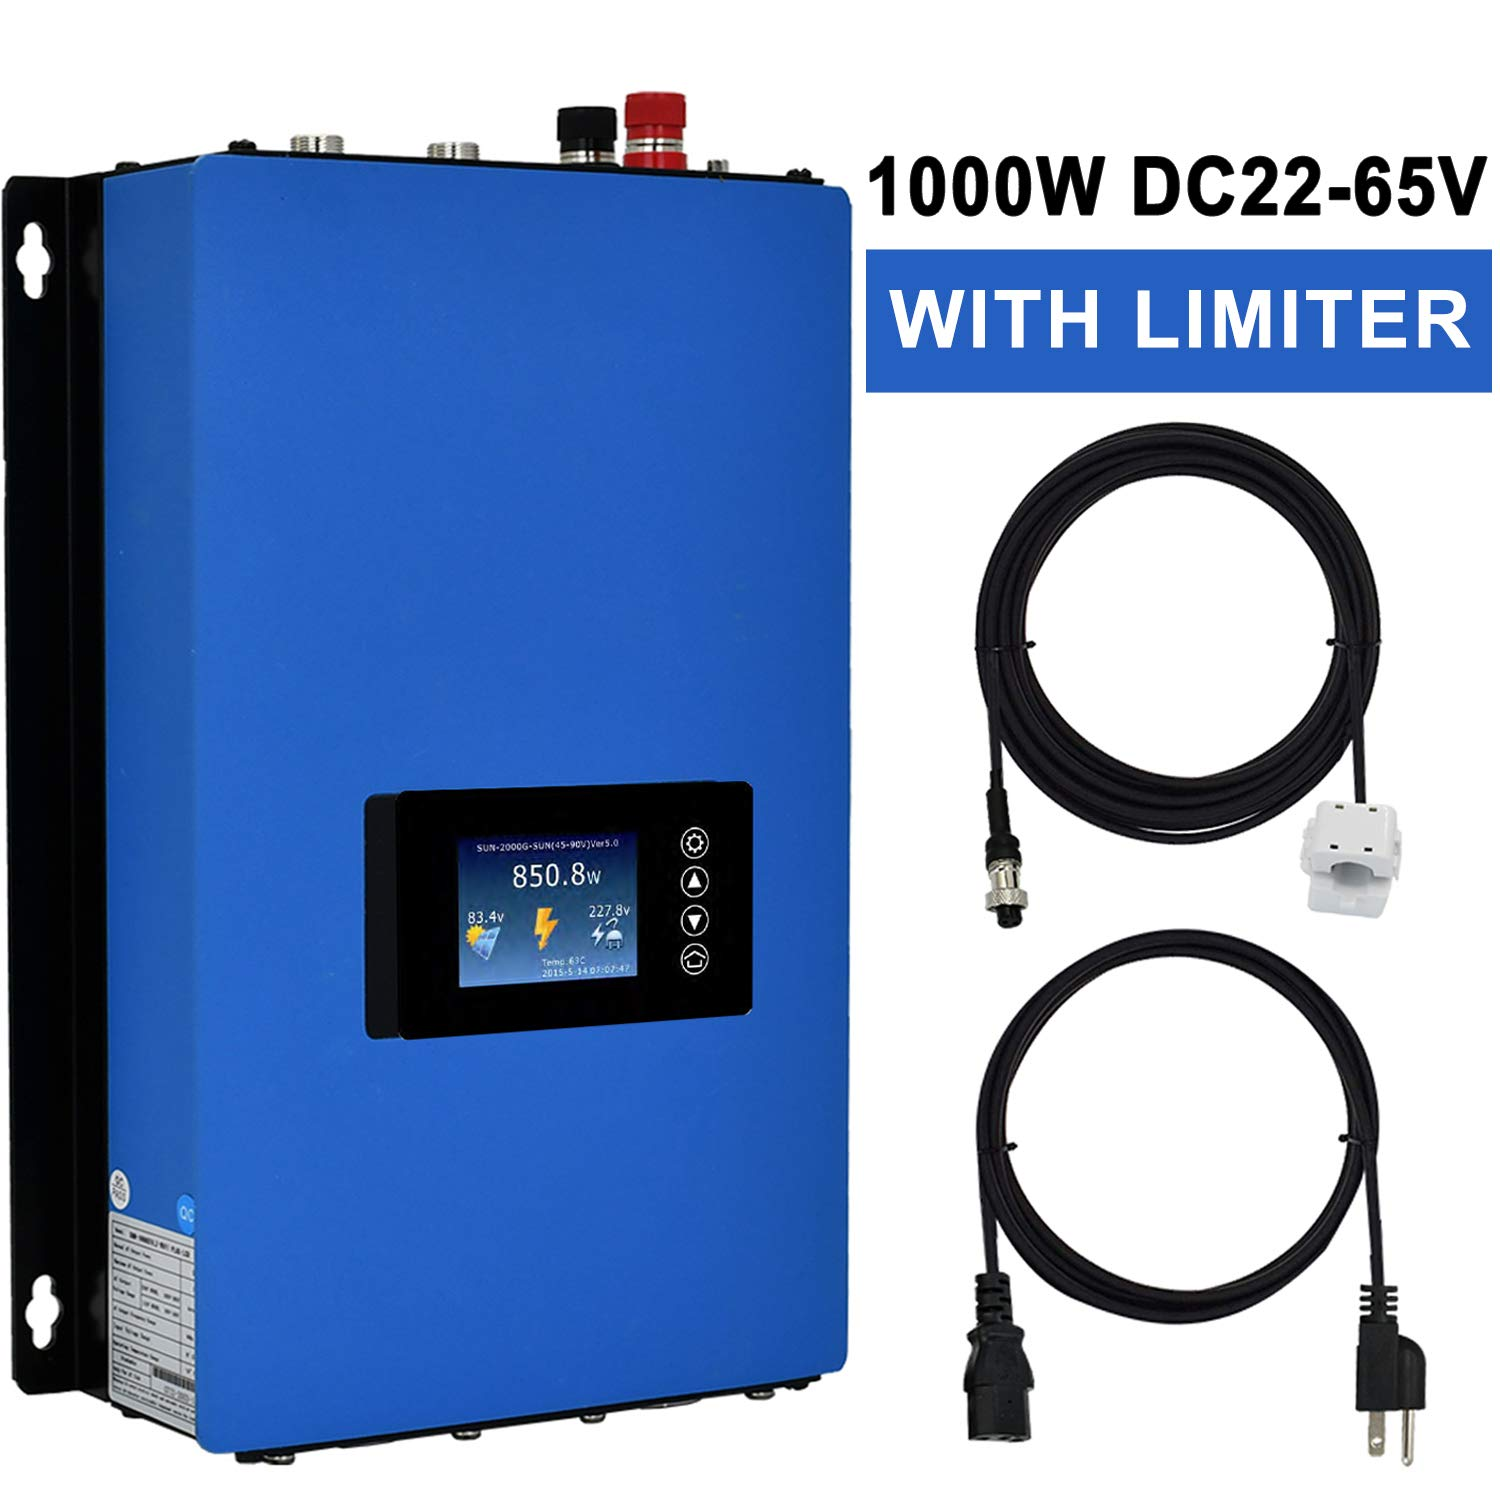 ECO-WORTHY Solar On-Grid Tied Micro Inverter Power Limiter MPPT PV System DC To AC (600W DC24V)